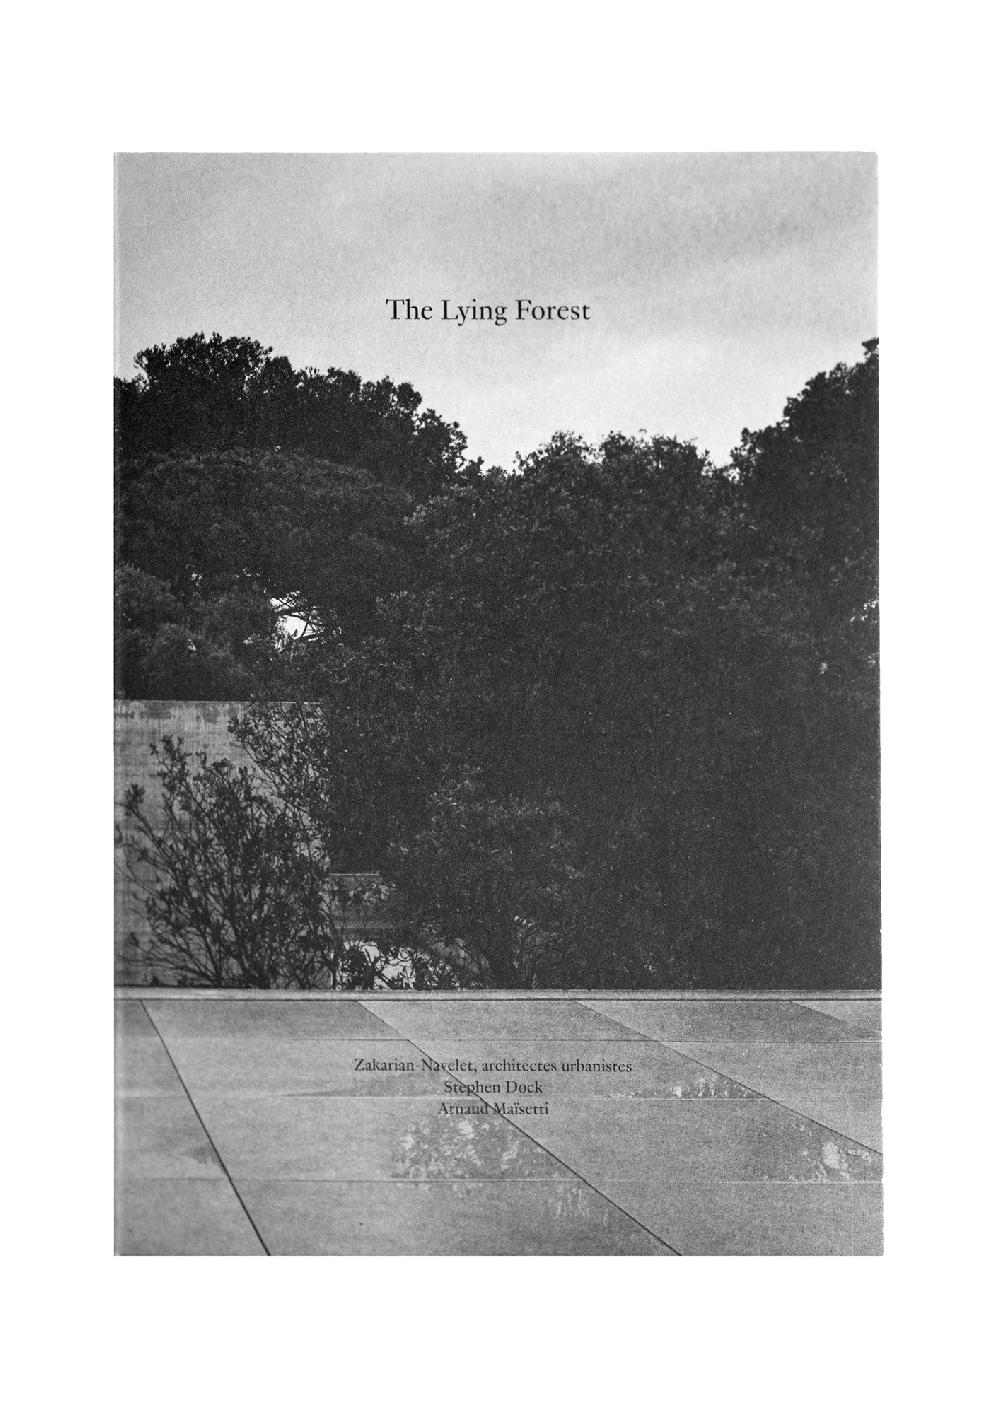 The Lying Forest - La forêt couchée